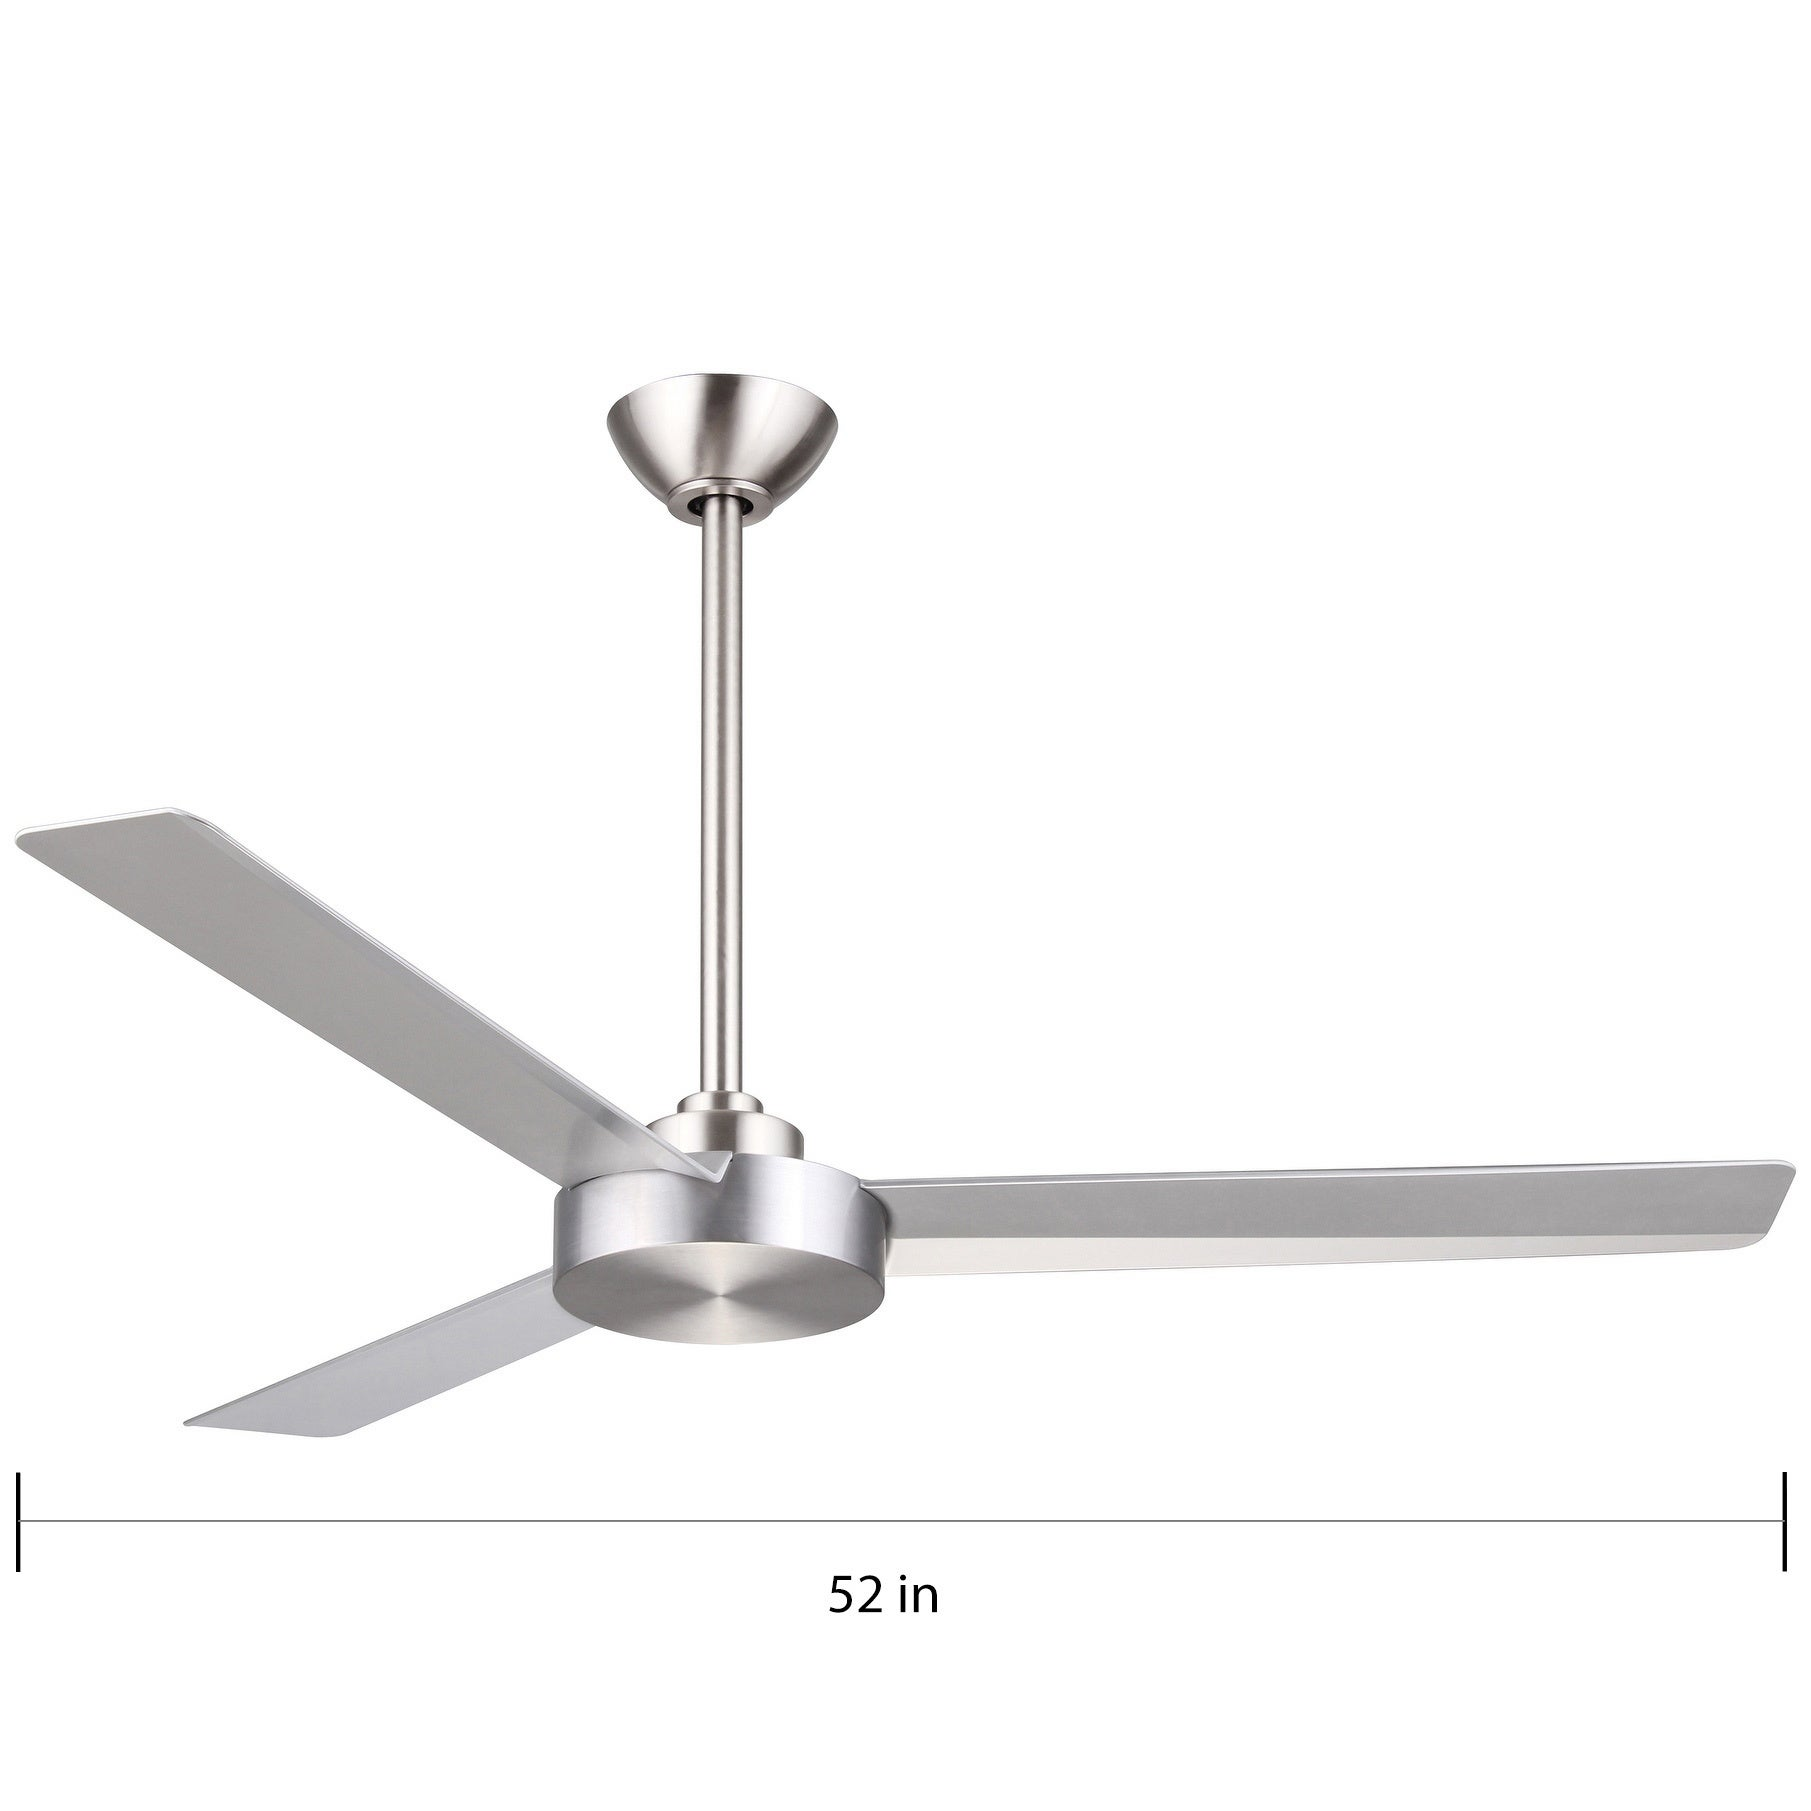 Swell Roto Ceiling Fan In Brushed Aluminum Finish W Silver Blades N A Interior Design Ideas Inamawefileorg